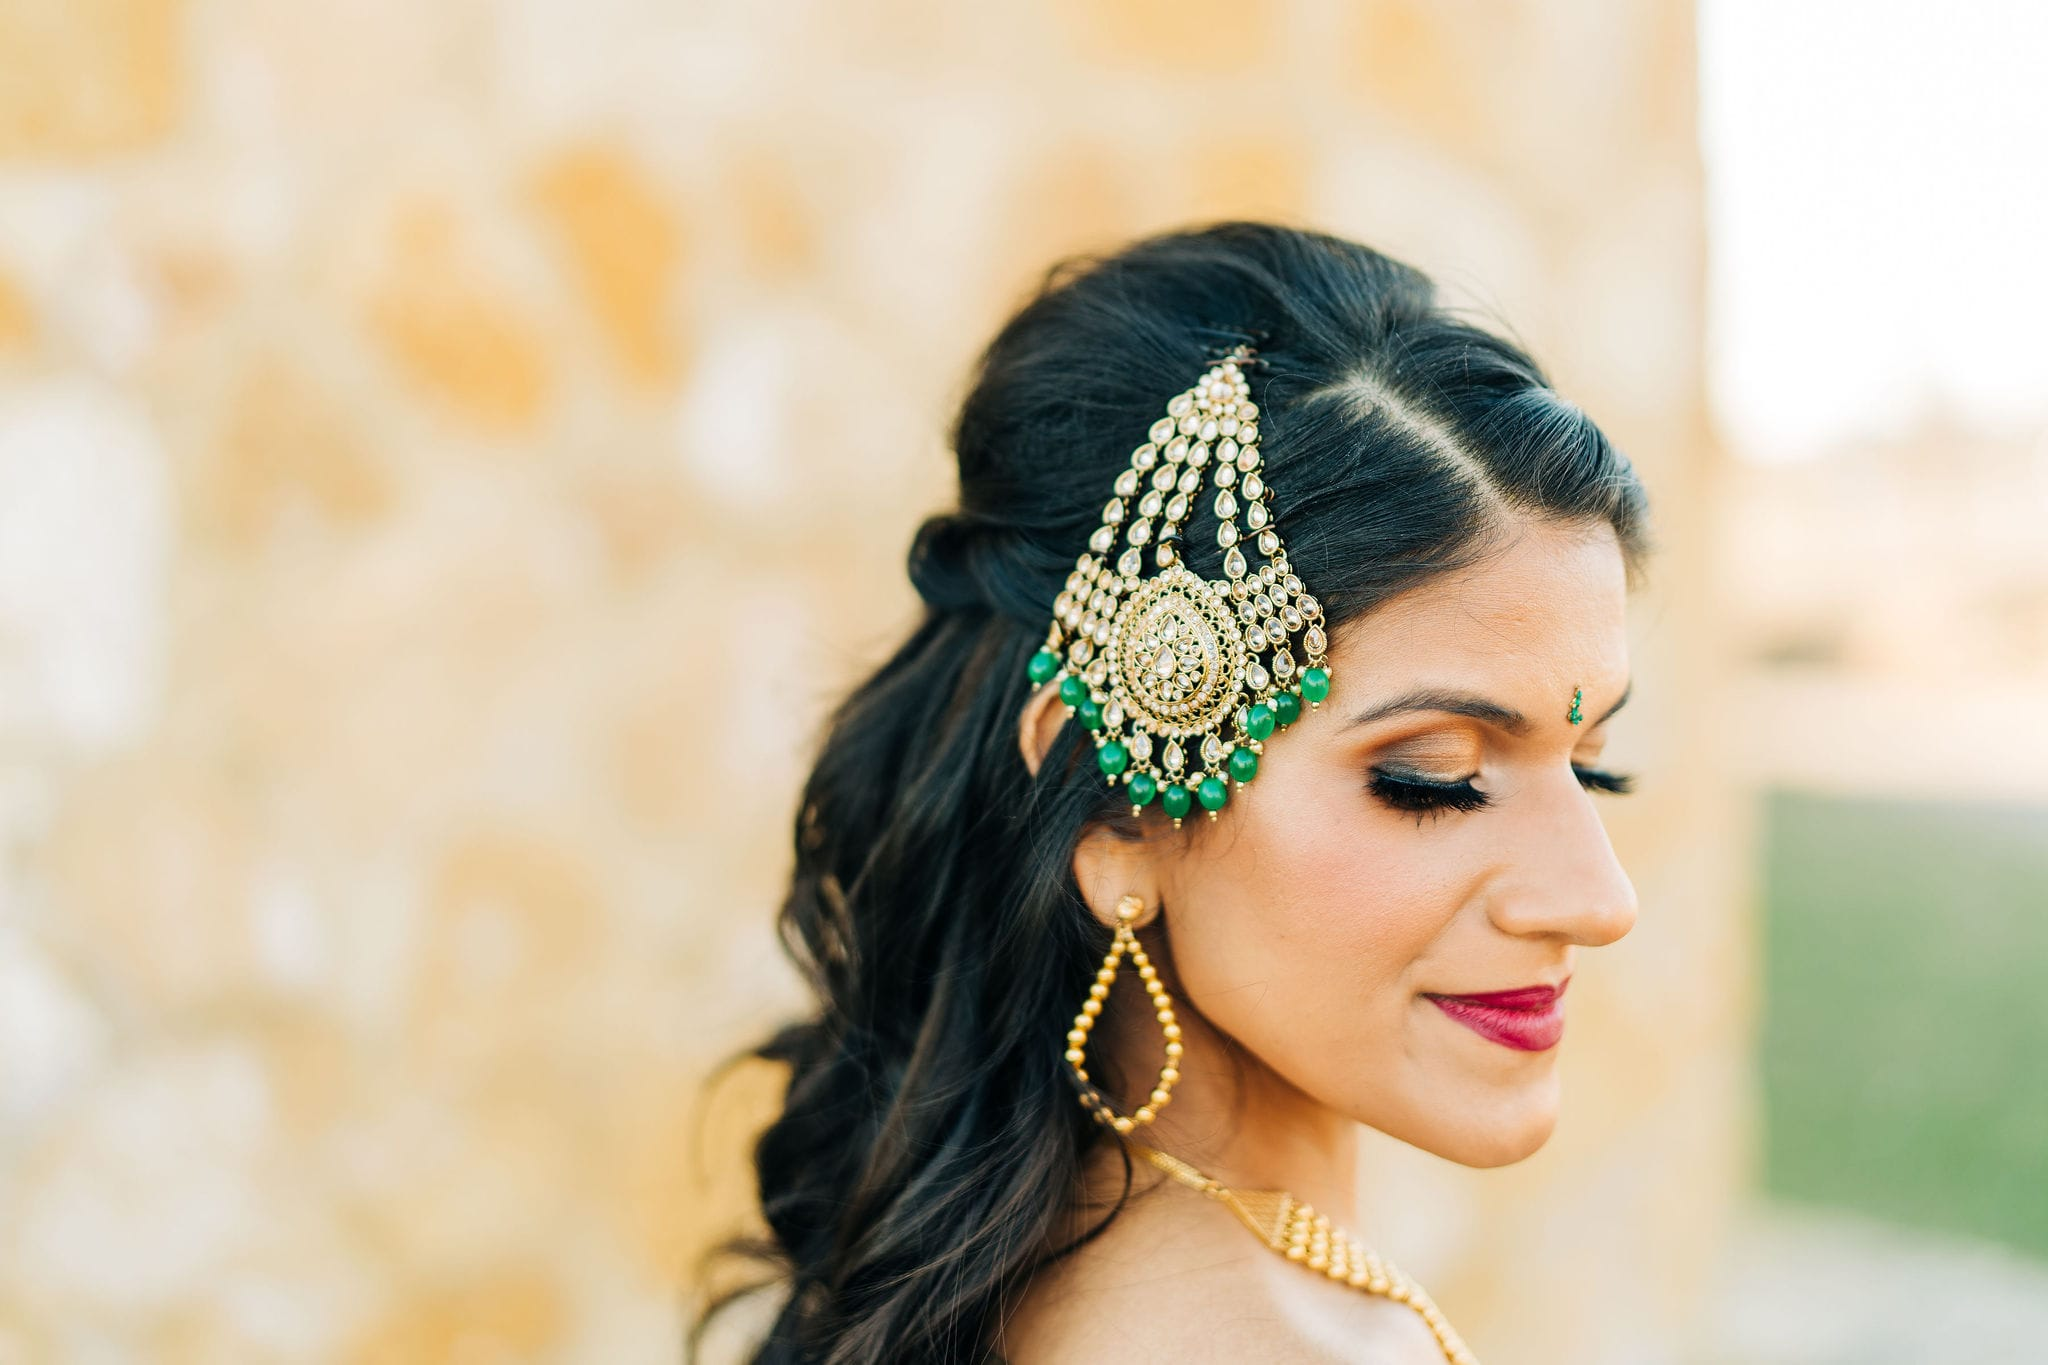 indian-wedding-los-angeles-photographer-044.jpg